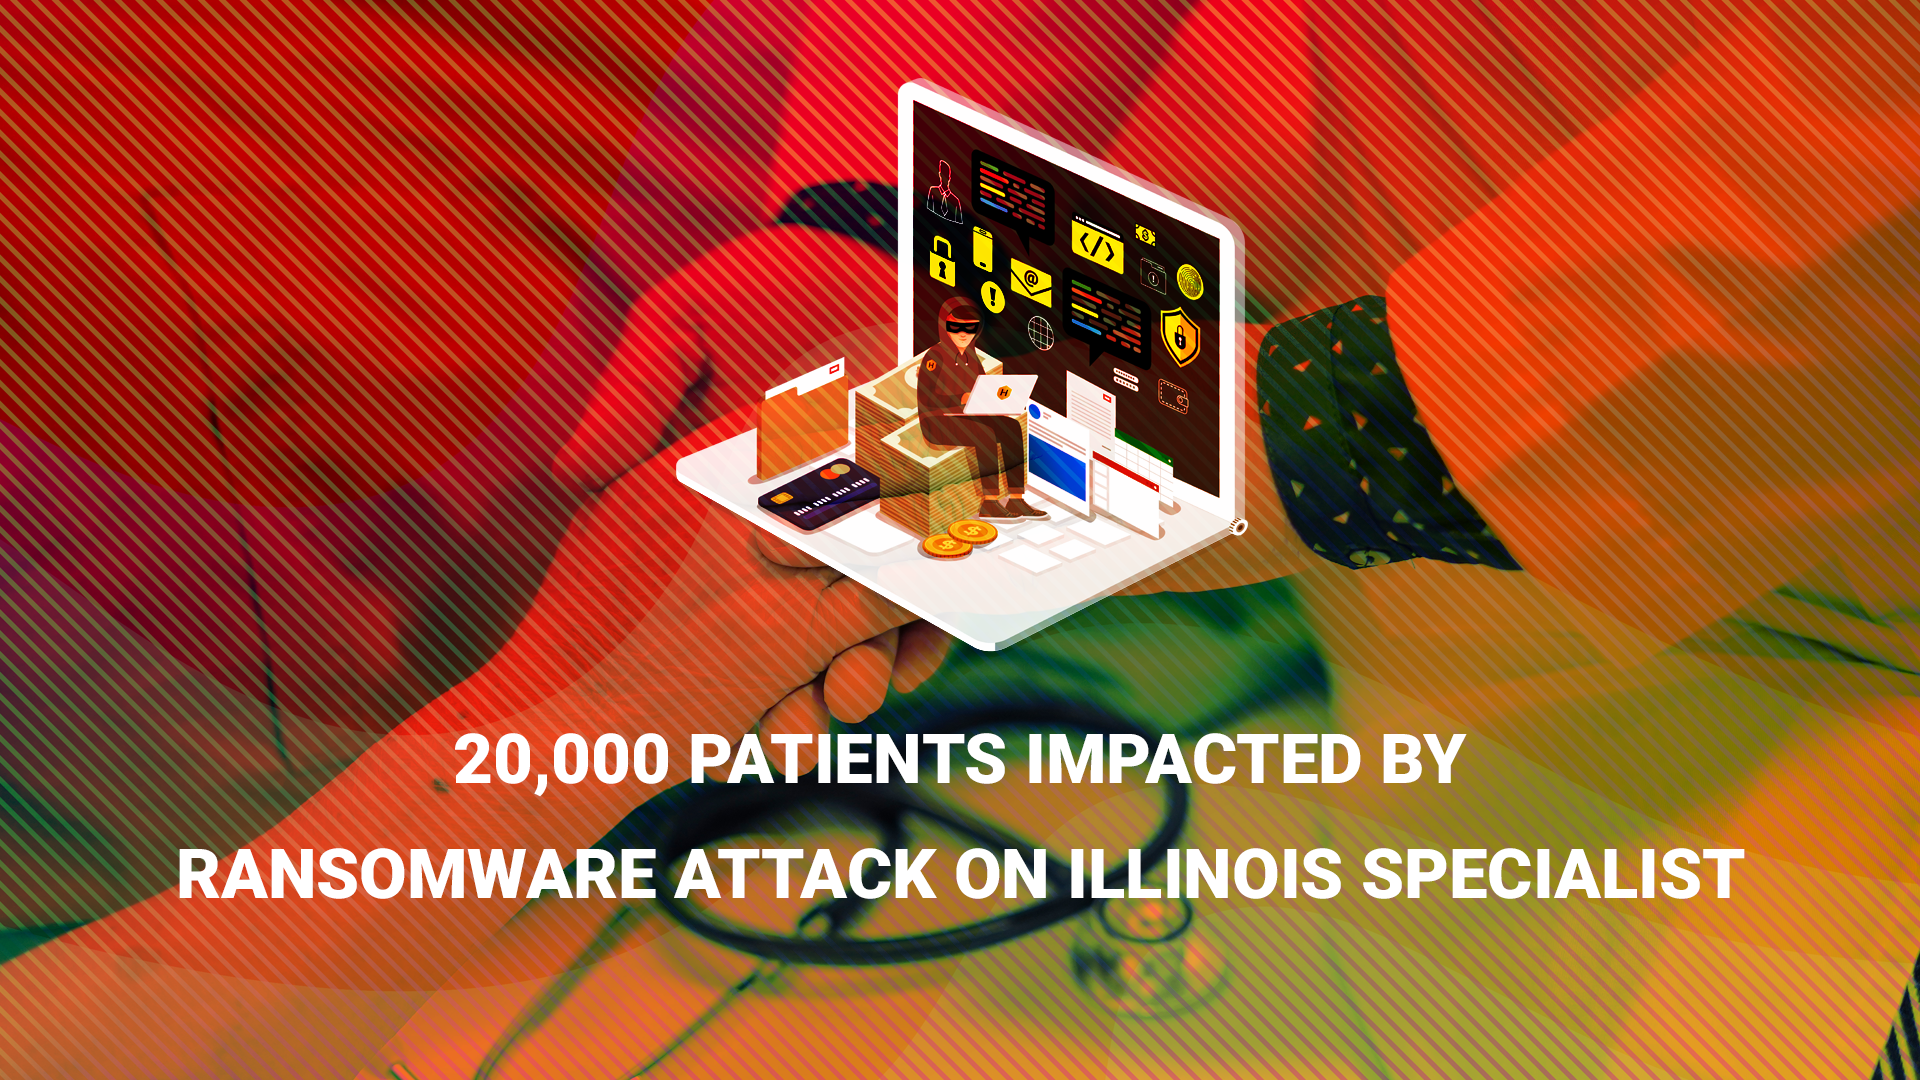 20,000 Patients Impacted by Ransomware Attack on Illinois Specialist